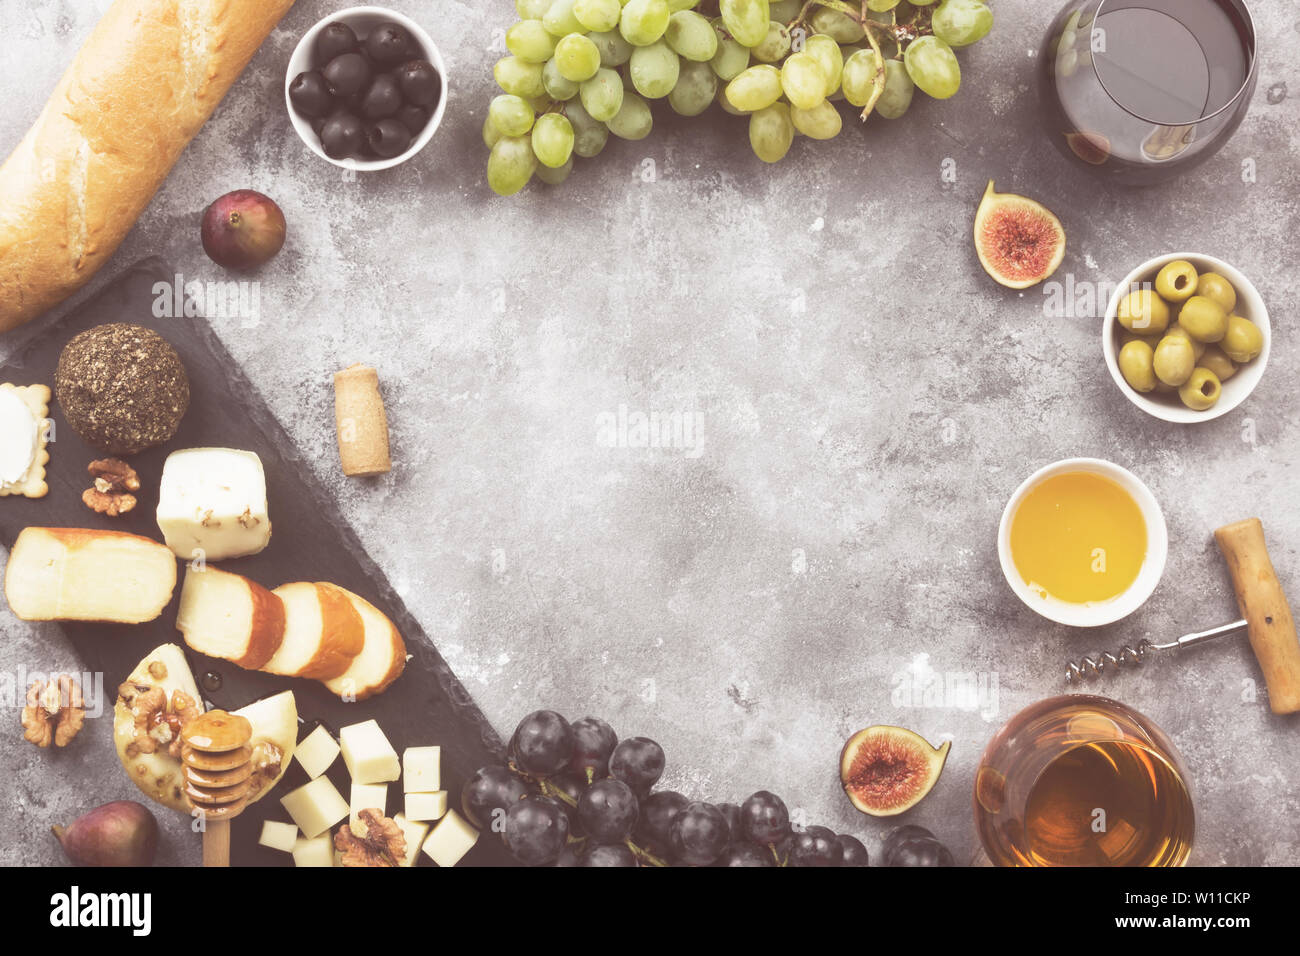 Snacks with wine - various types of cheeses, figs, nuts, honey, grapes, bread on a gray background. Top view, copy space. Food background. Toned Stock Photo